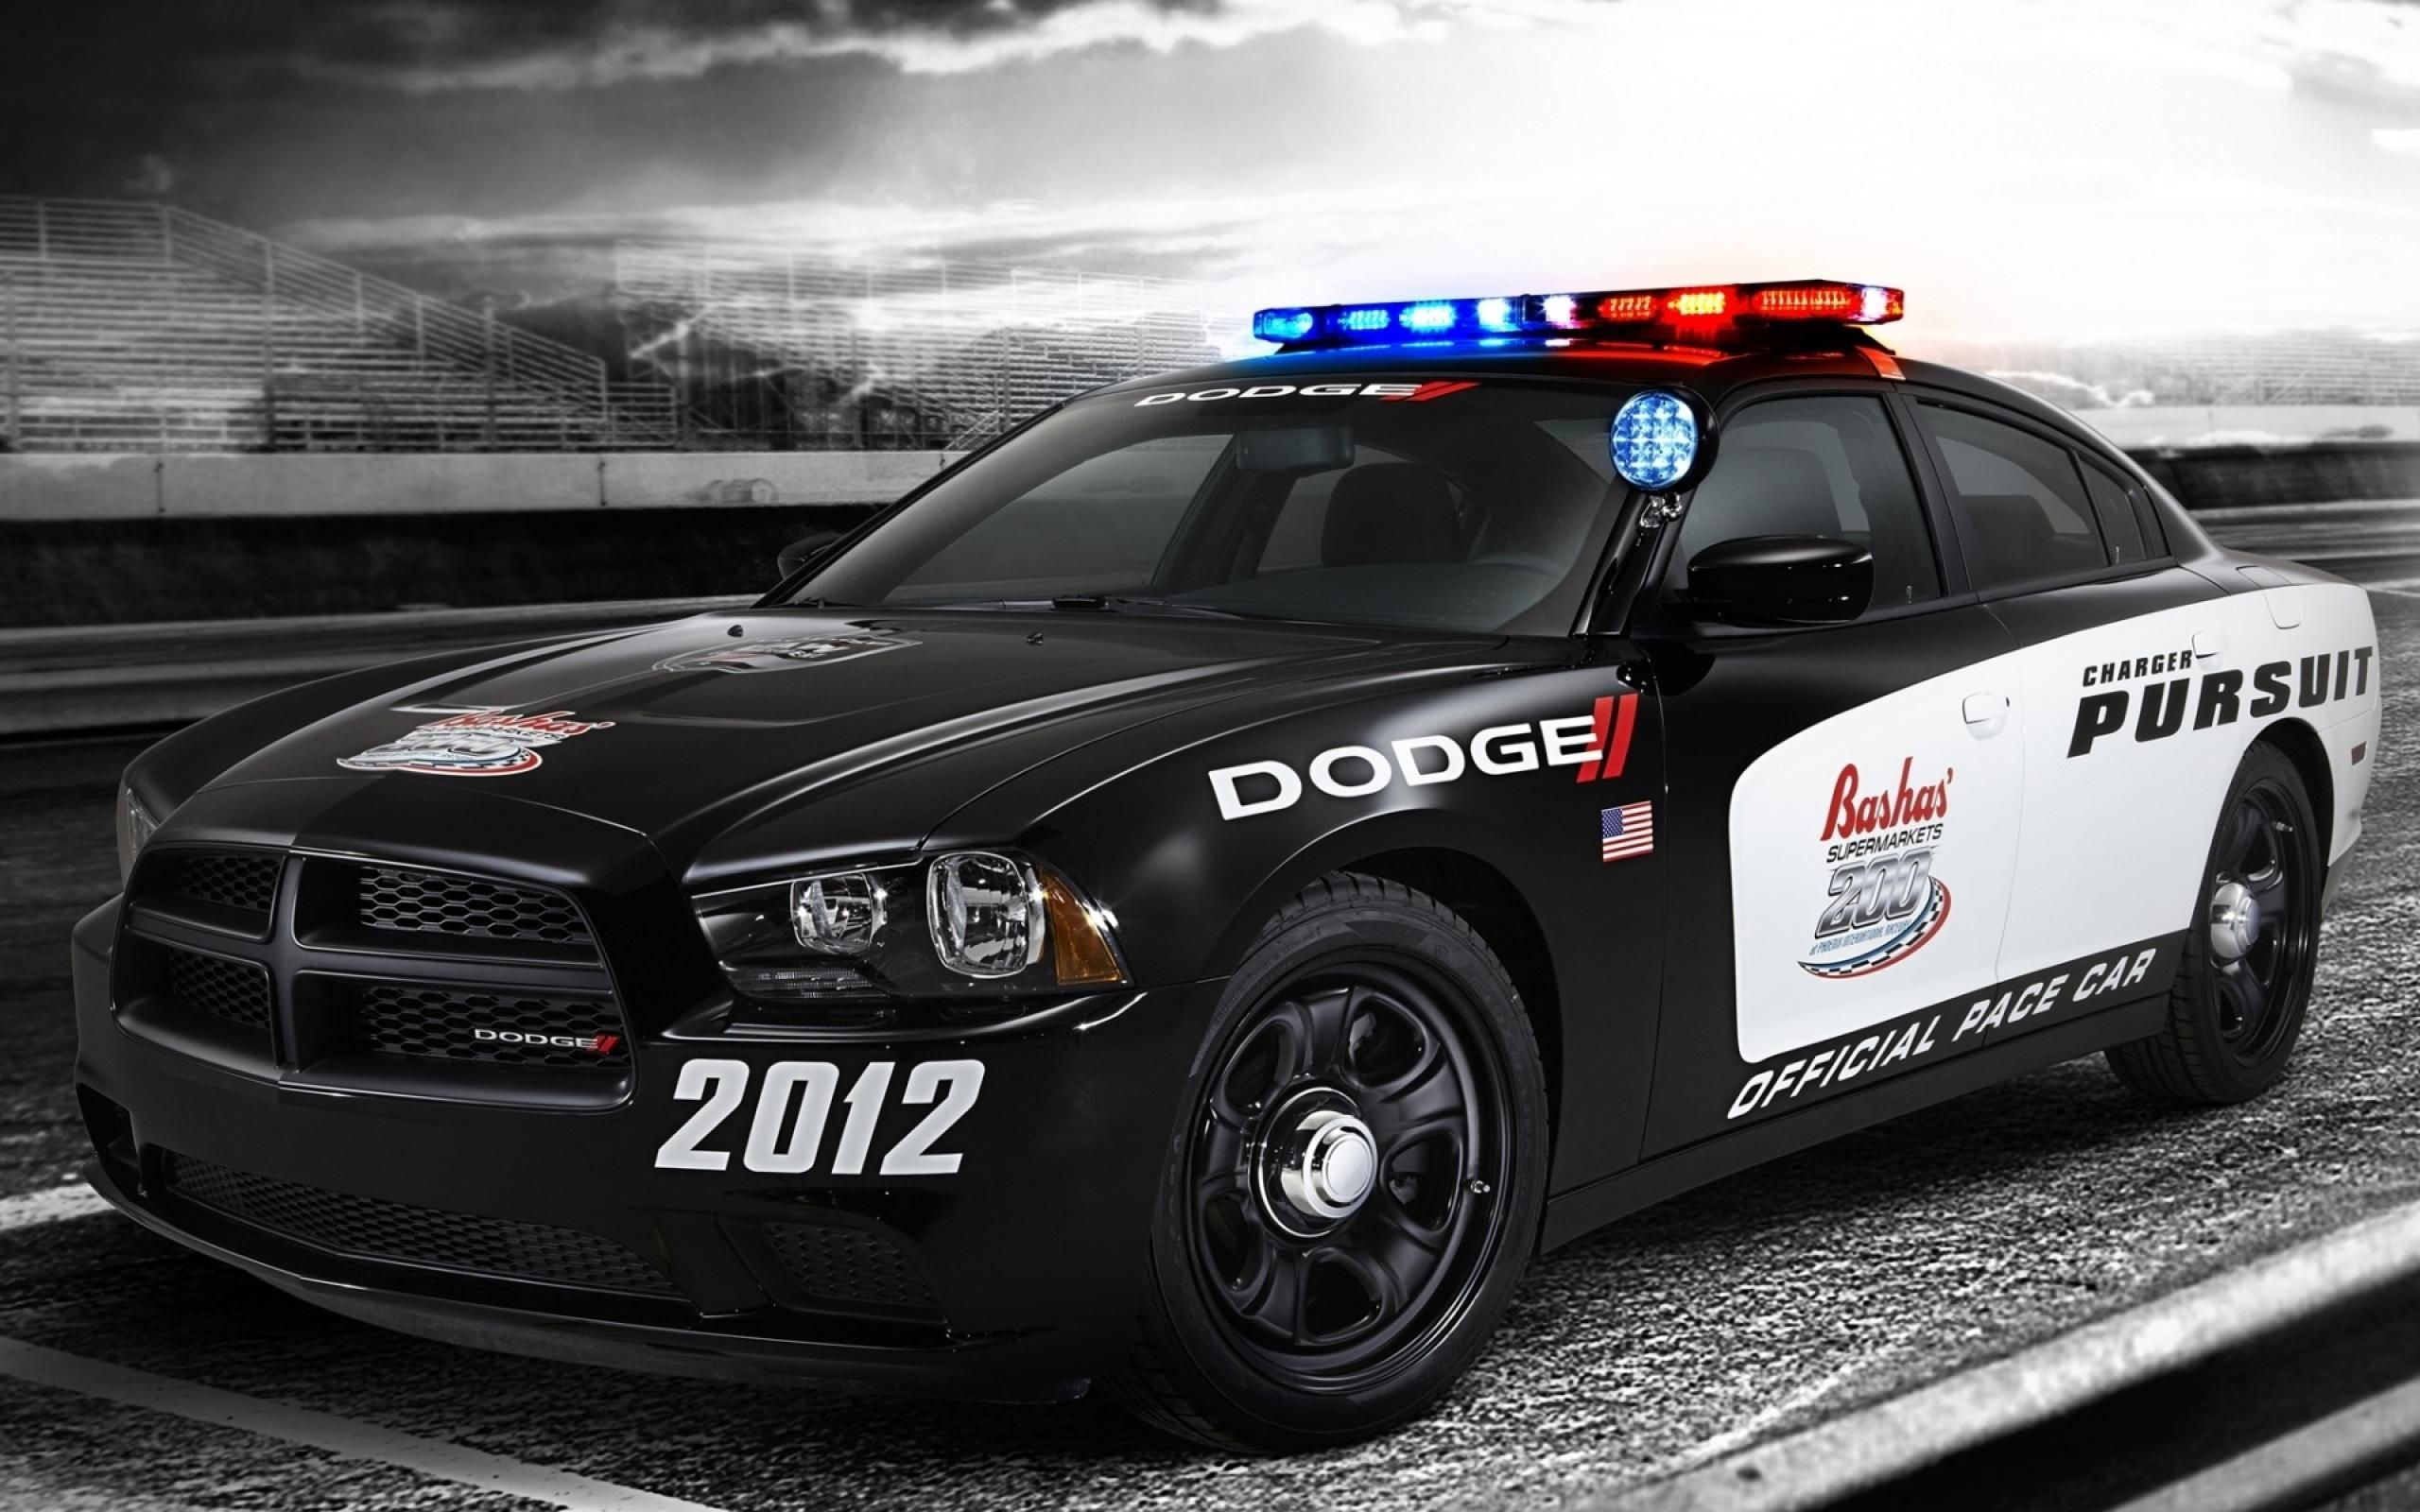 Police Car Website >> Are You Looking For Police Cars Hd Wallpapers Download